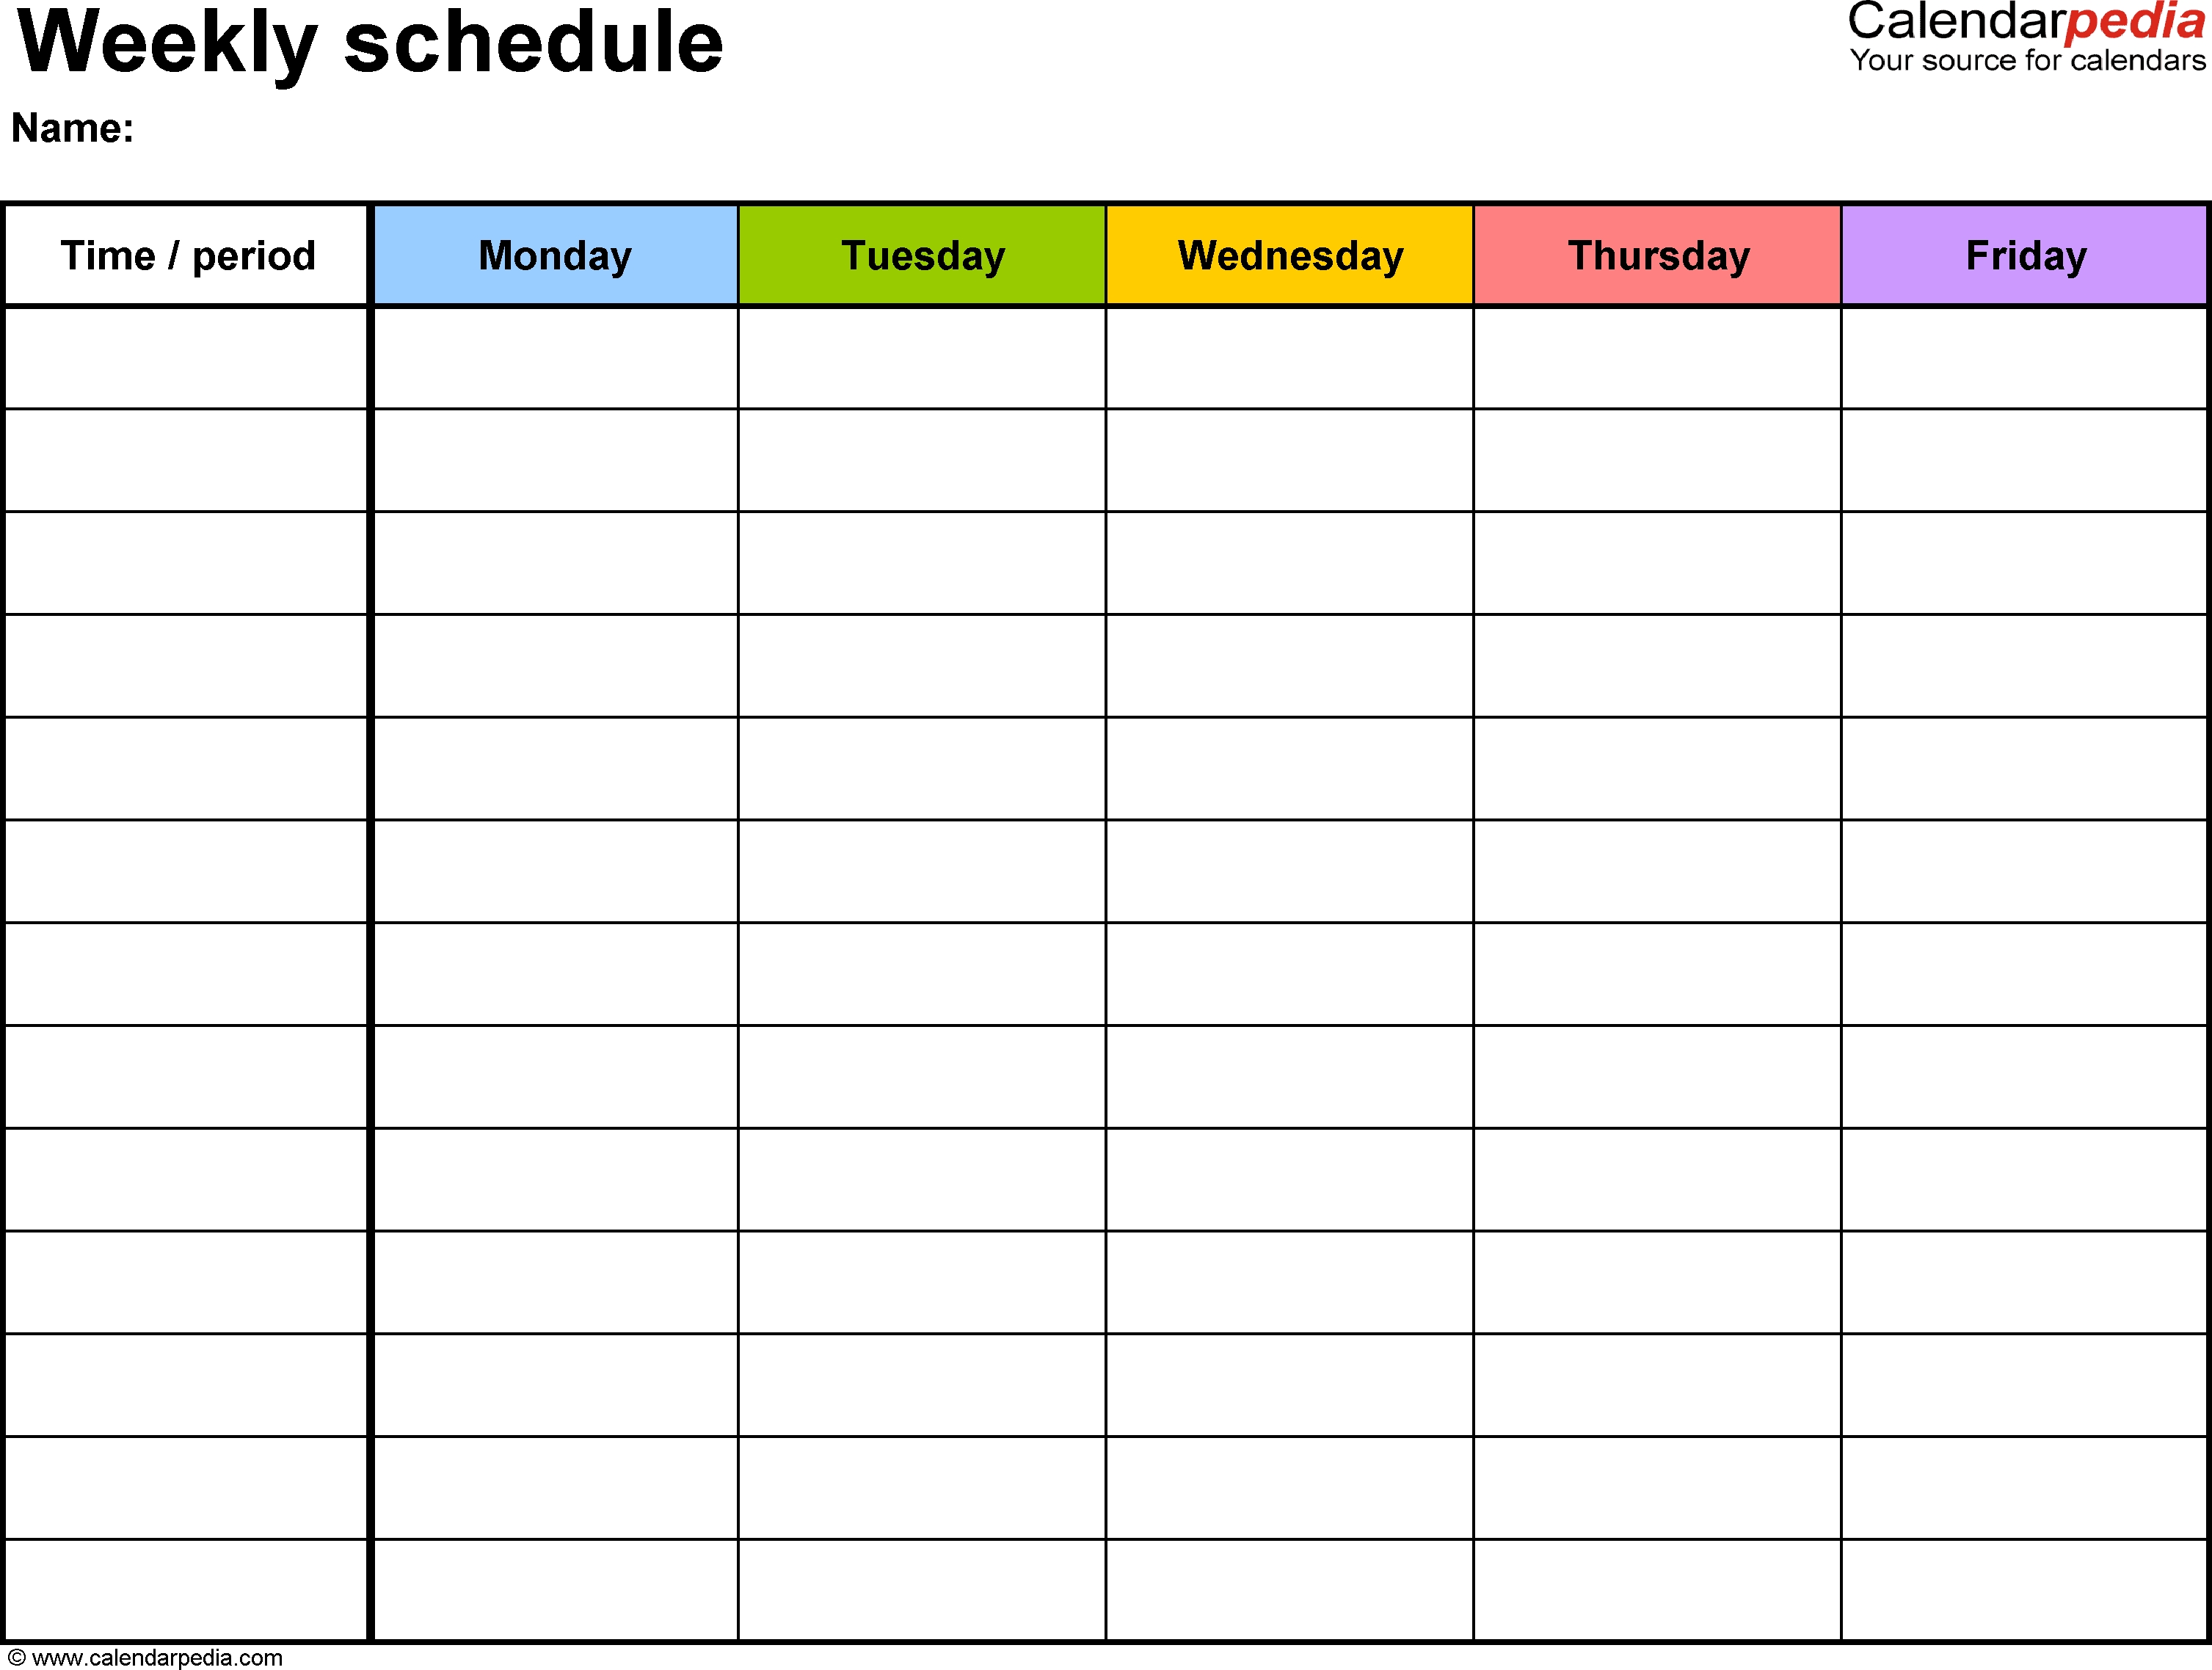 Blank Calendar Print Out | Schedule Templates, Weekly